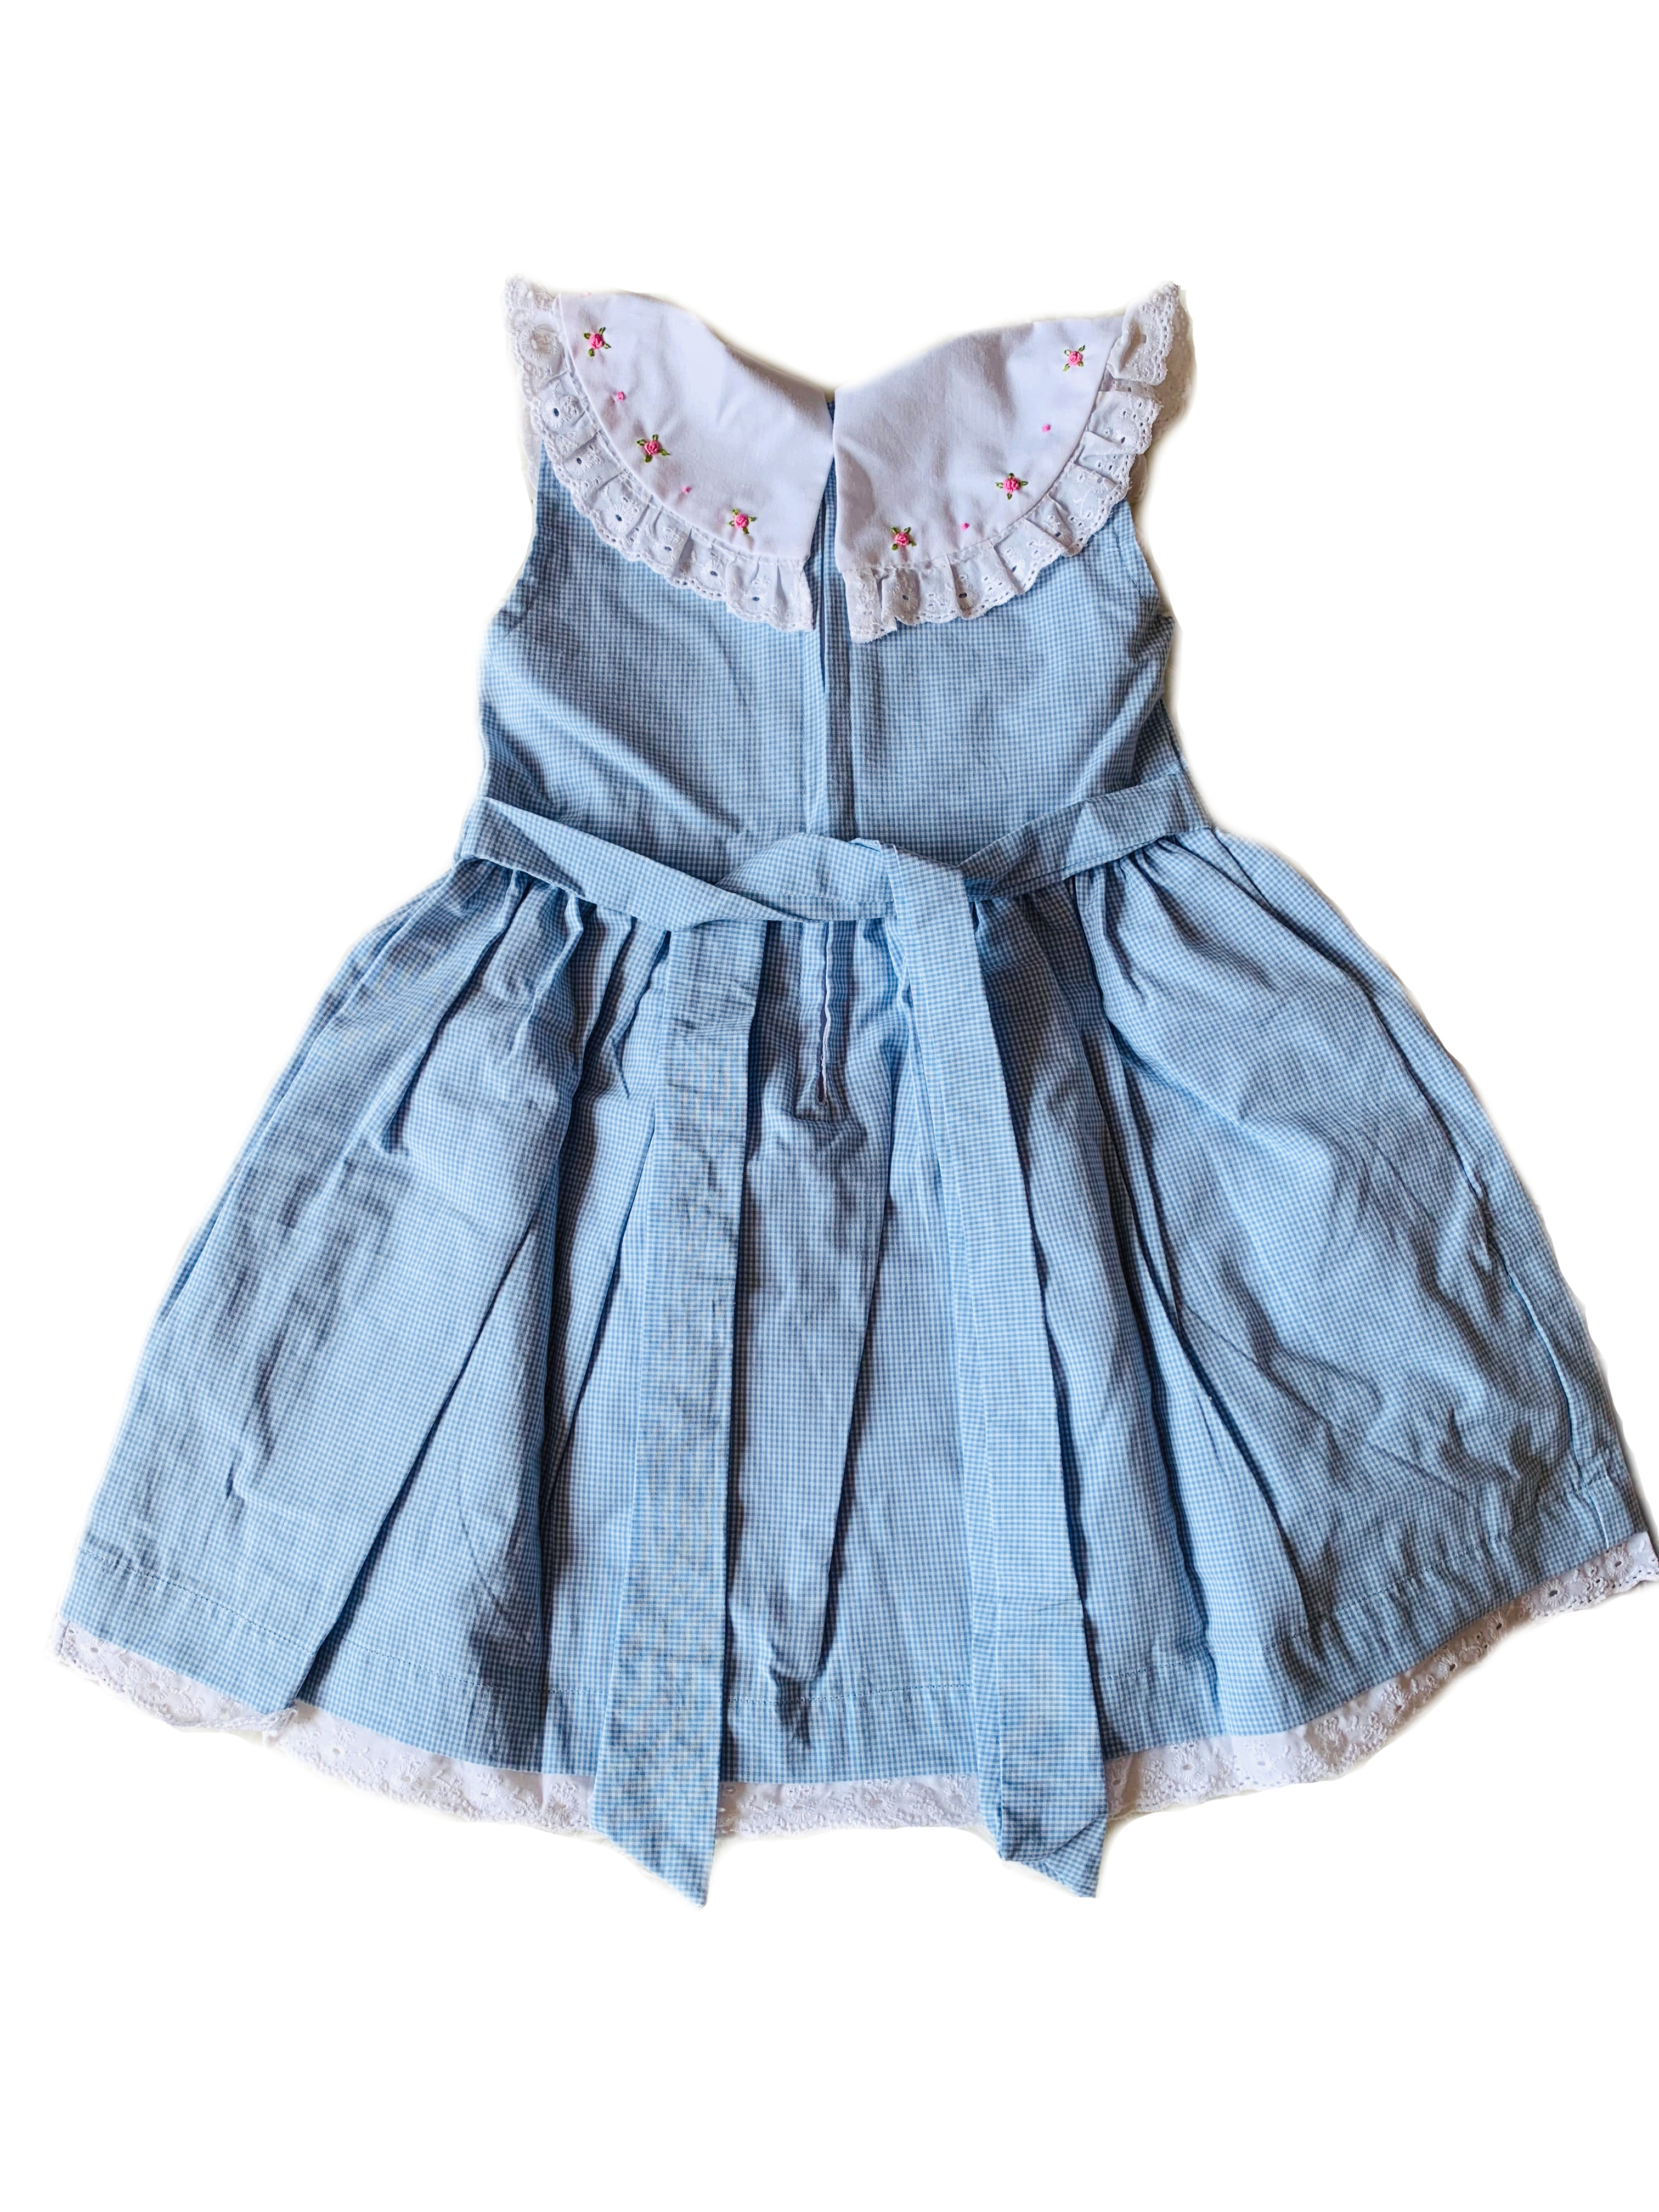 Back of baby blue gingham sleeveless dress with contrasting round white collar and dainty hand-embroidered flowers, lace to trim the hem, zippered back and sash to tie at waist for girls